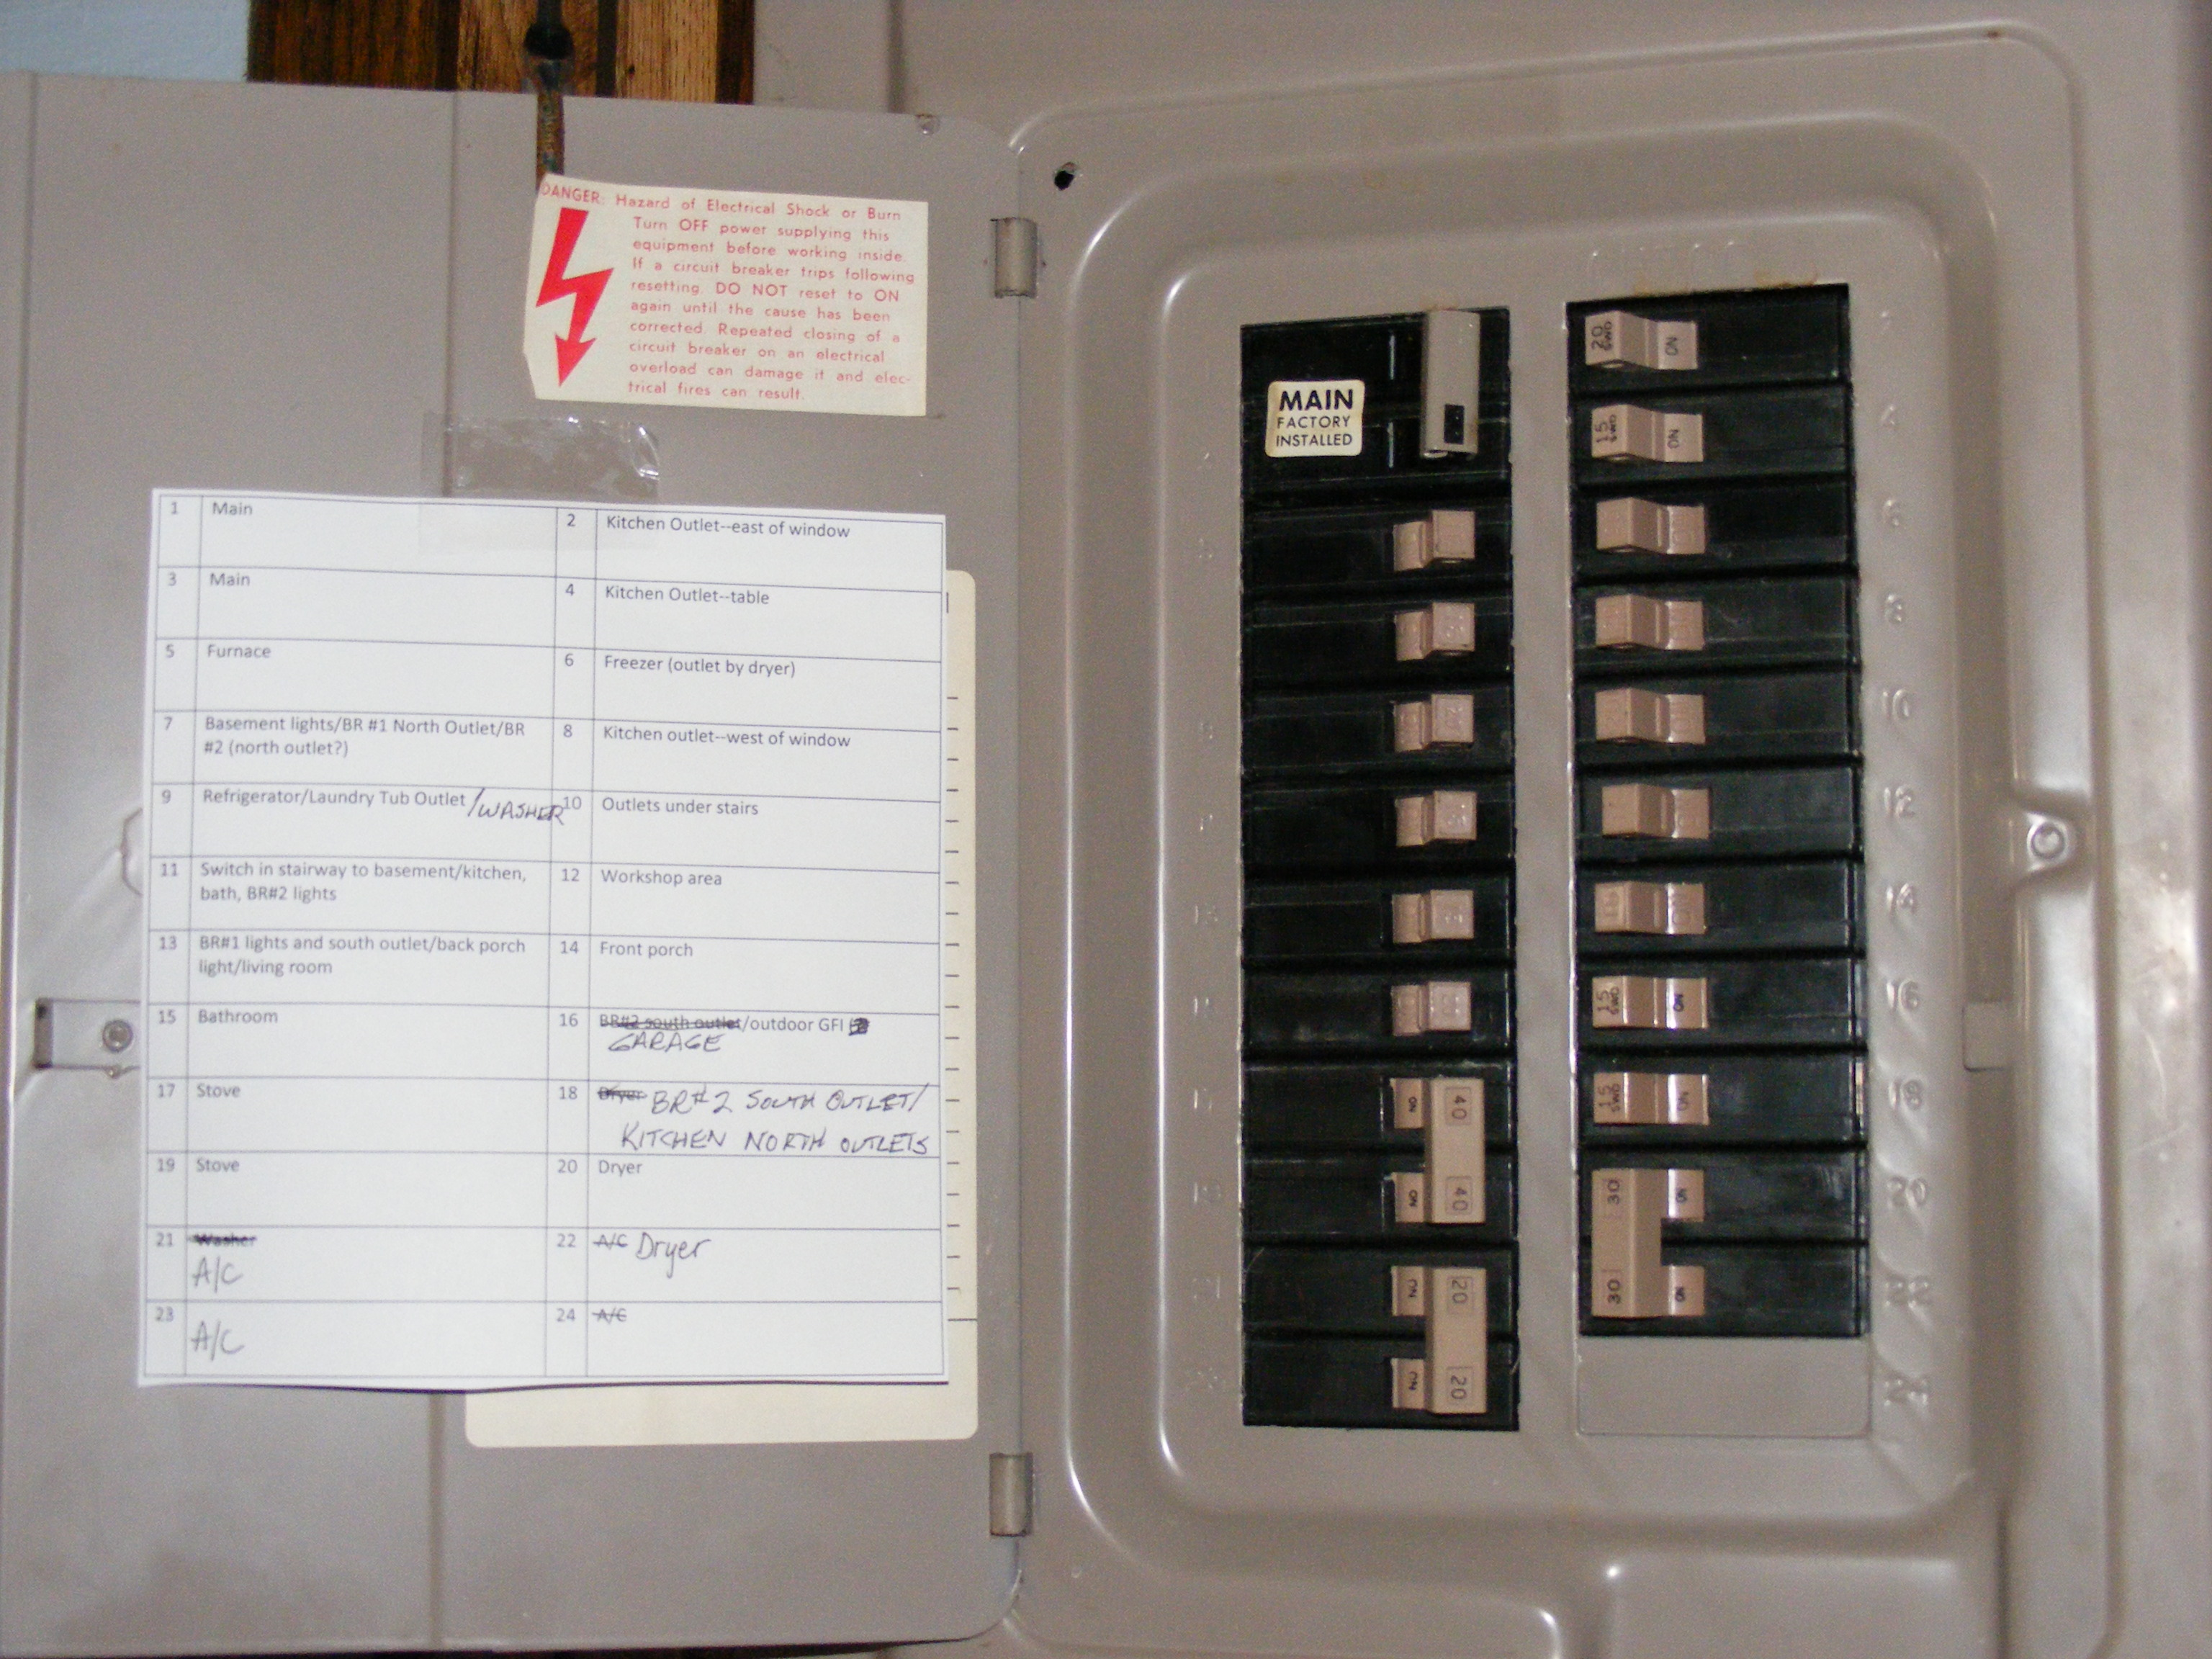 circuit breaker fuse box on circuit images free download wiring Circuit Breaker Fuse Box circuit breaker fuse box 9 circuit breaker fuse box difference components of a breaker box circuit breaker fuse box